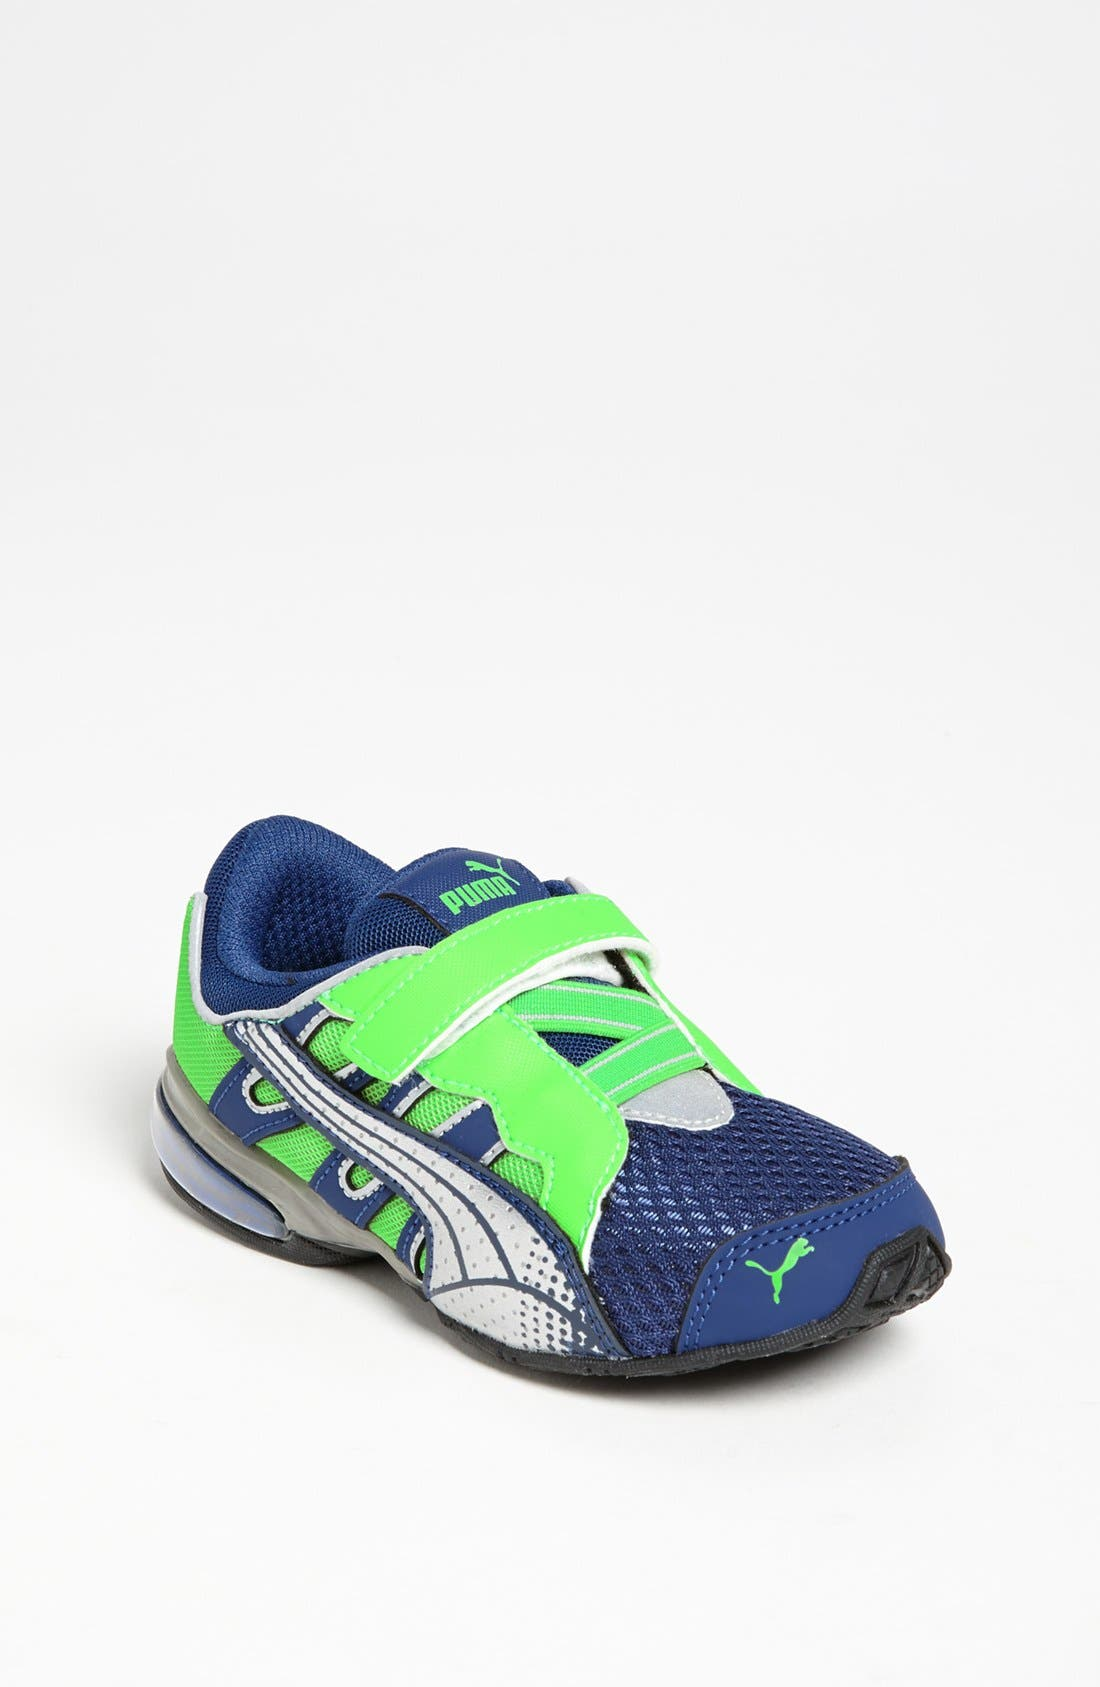 Alternate Image 1 Selected - PUMA 'Voltaic V' Sneaker (Baby, Walker, Toddler, Little Kid & Big Kid)